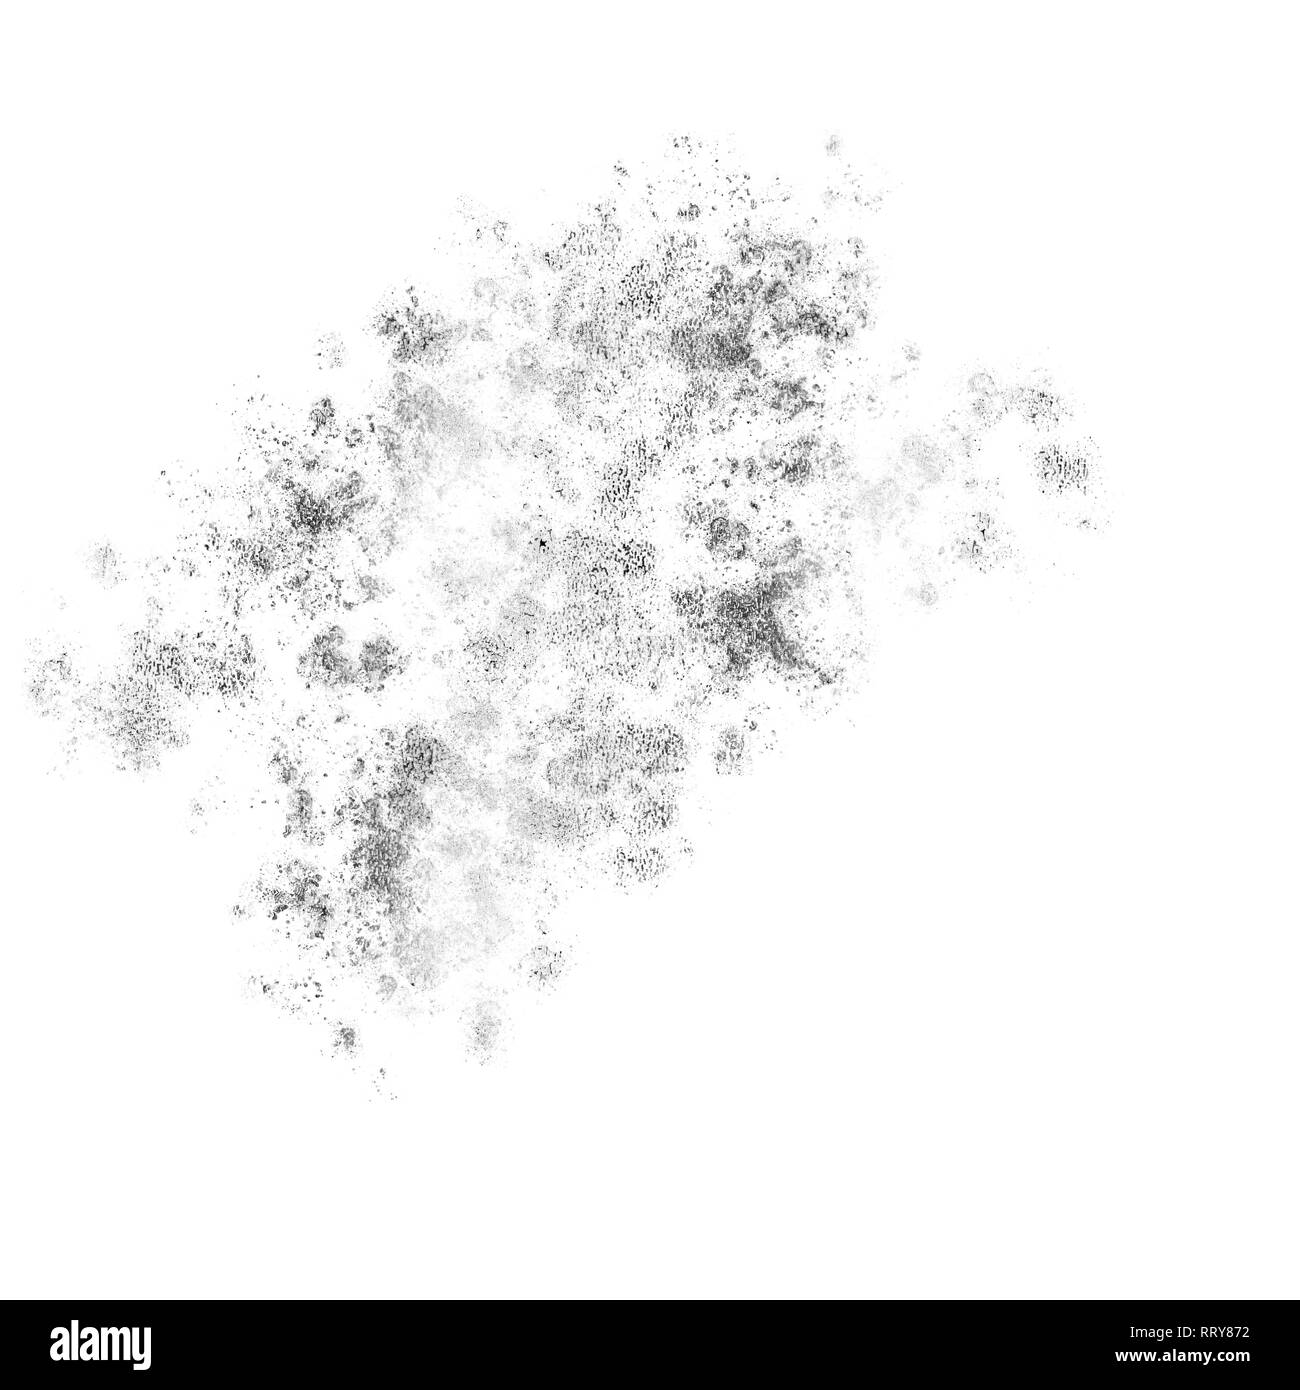 Silver spatter mess isolated on white, Illustration. - Stock Image